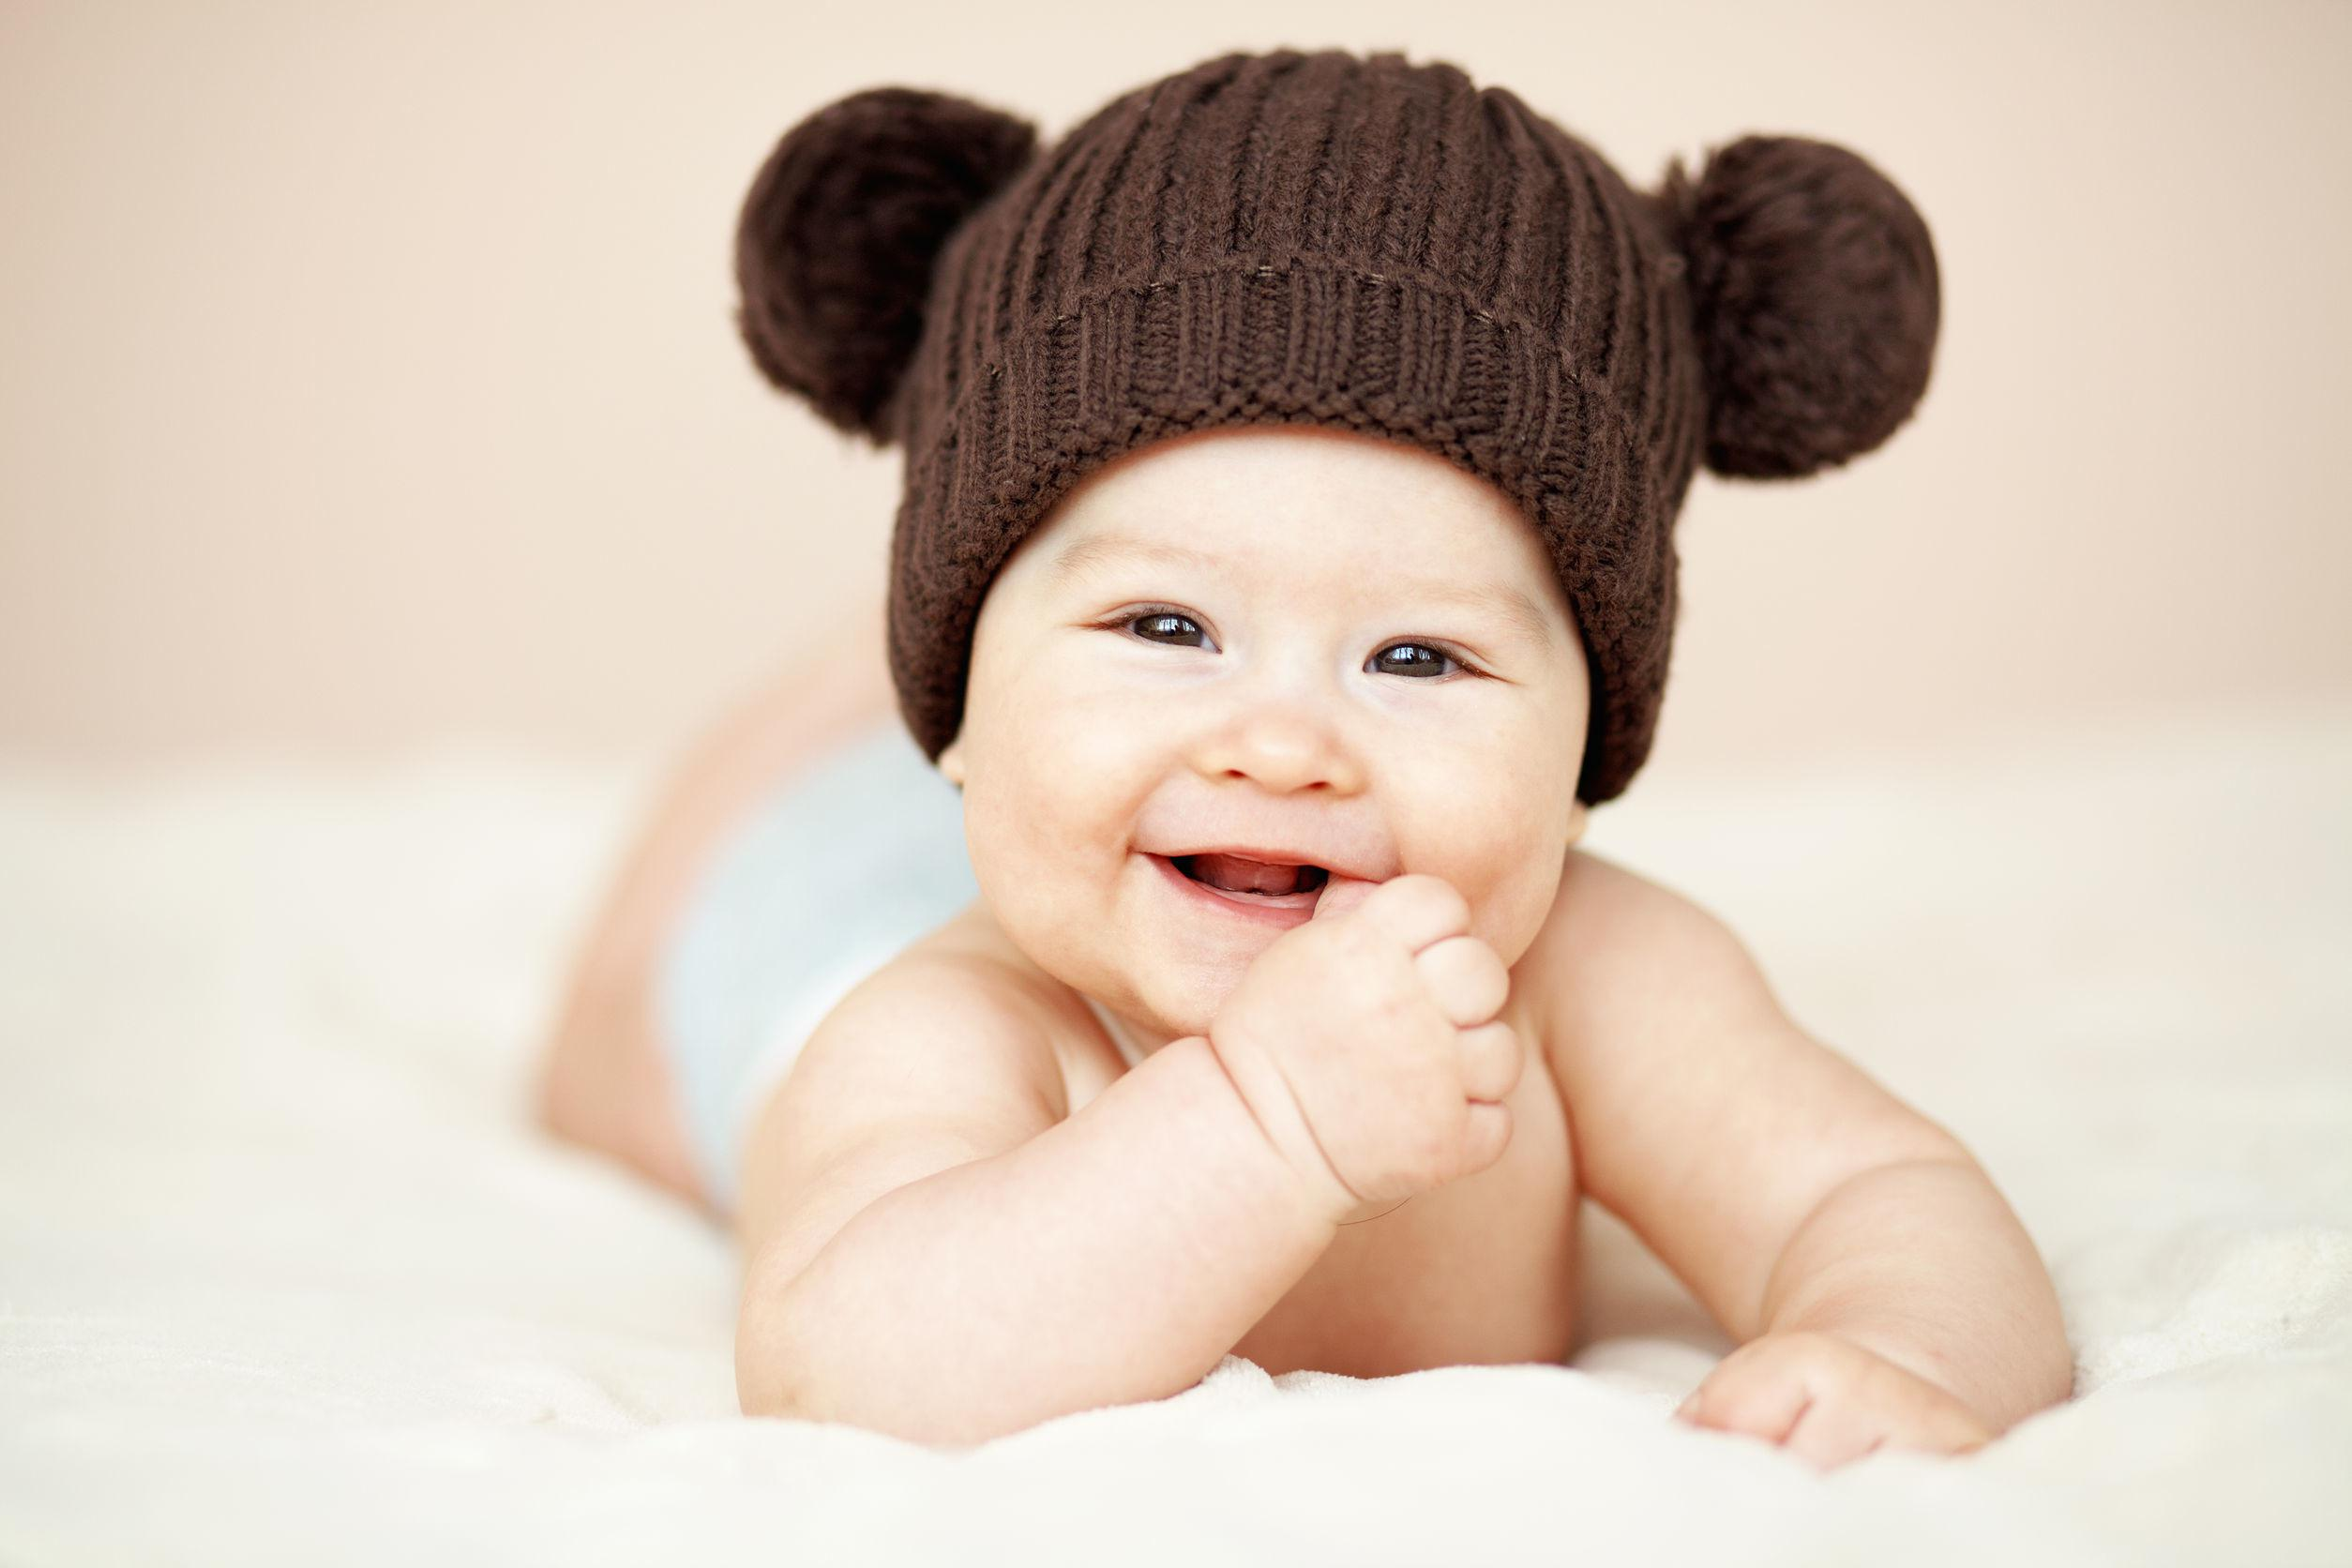 Cute Newborn Baby Wallpapers Hd Wallpapers Id Rh Hdwallpapers In